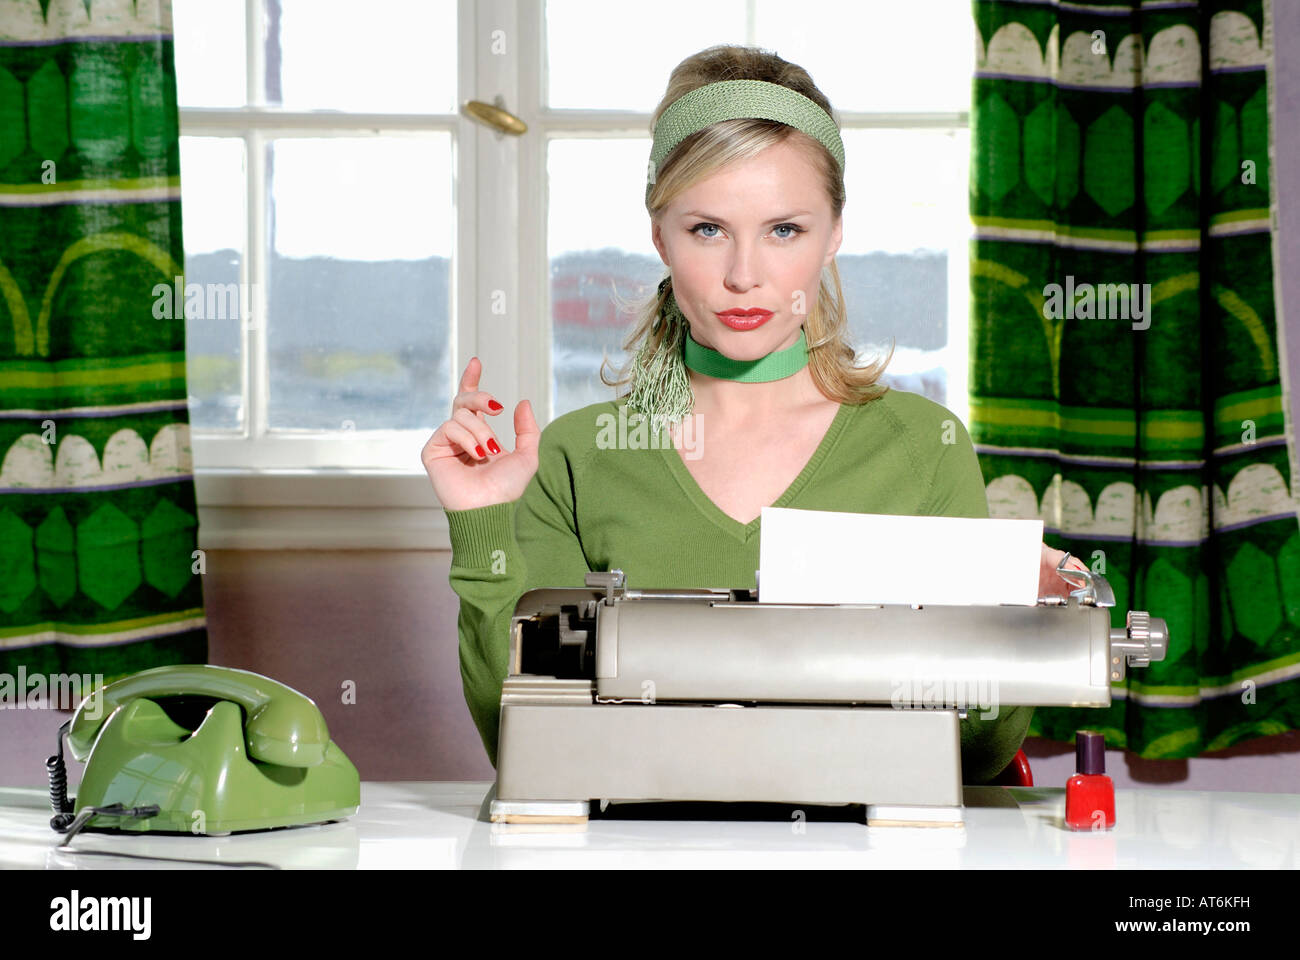 Young woman sitting at desk, close-up Photo Stock